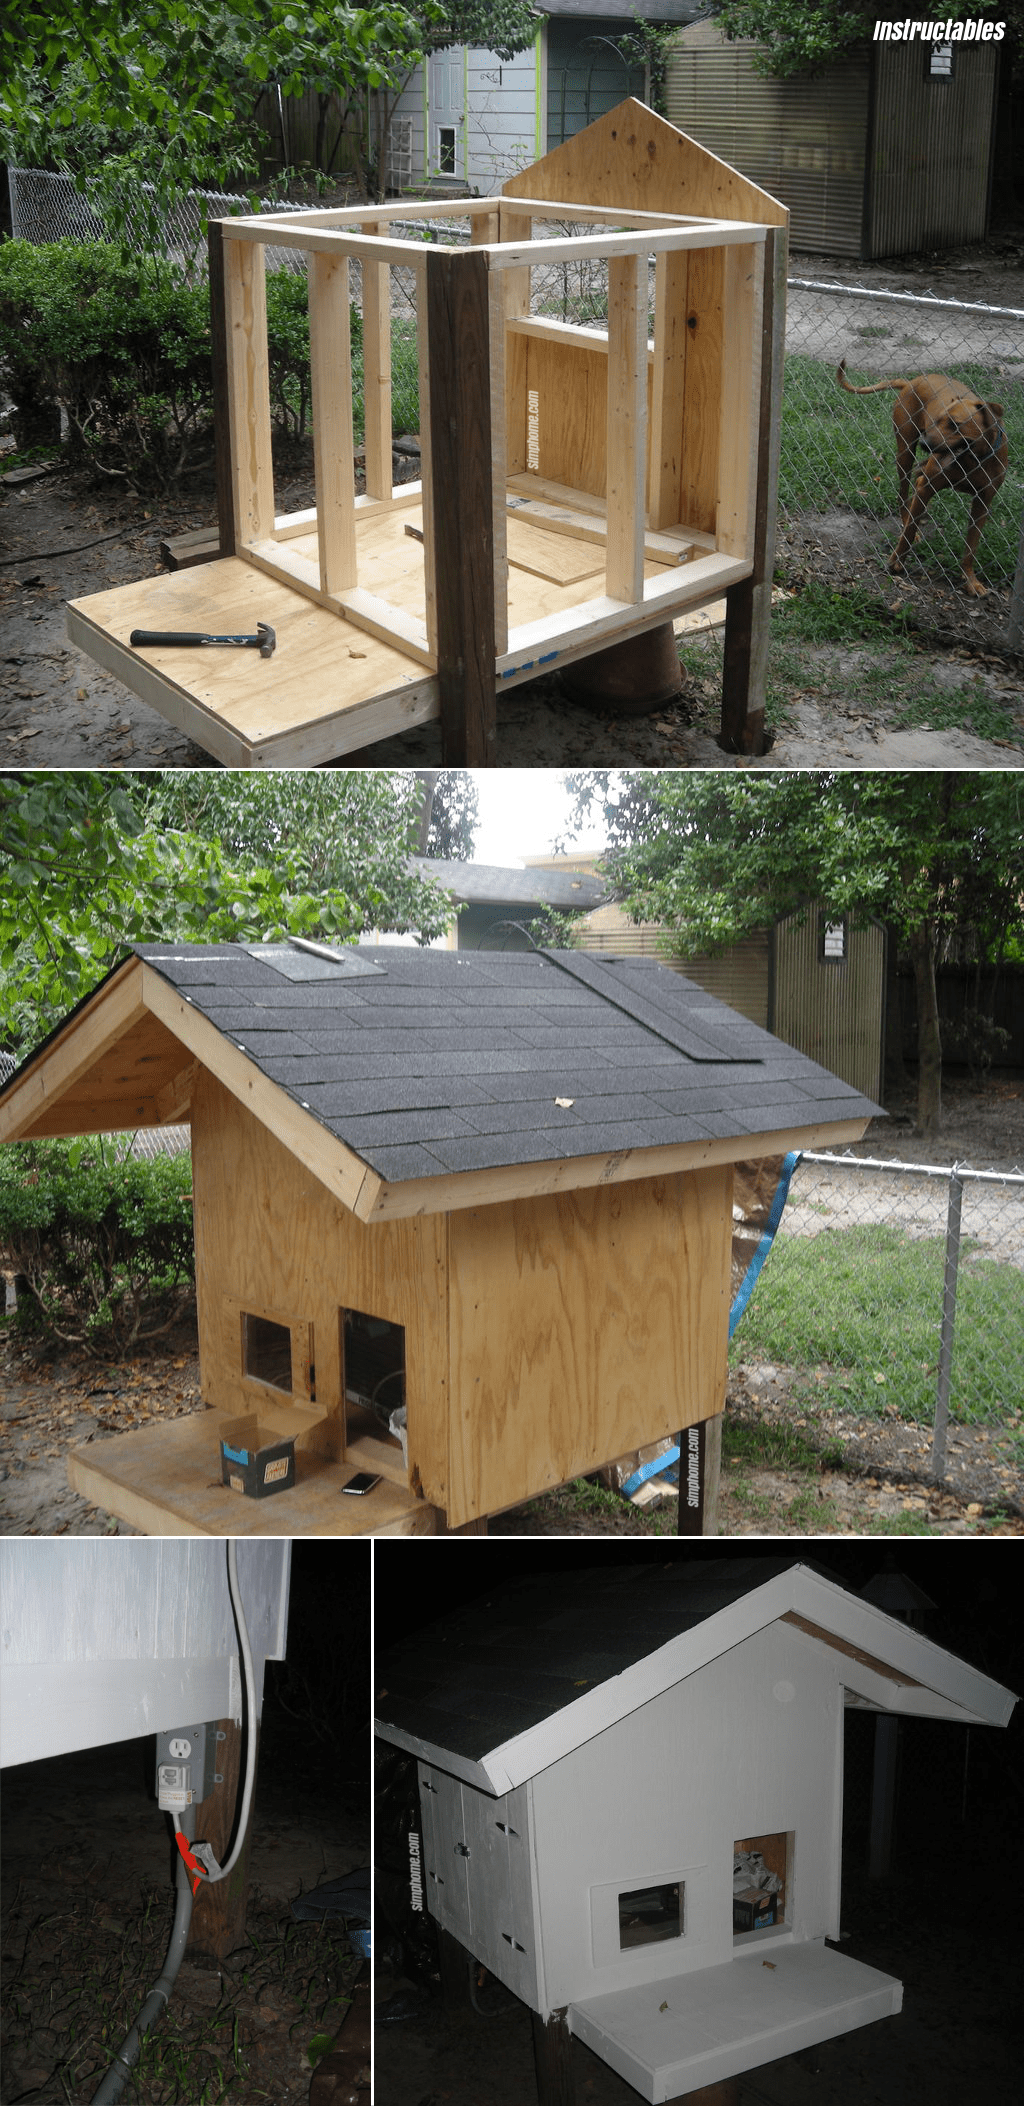 5.Air Conditioned Dog Kennel By Simphome.com